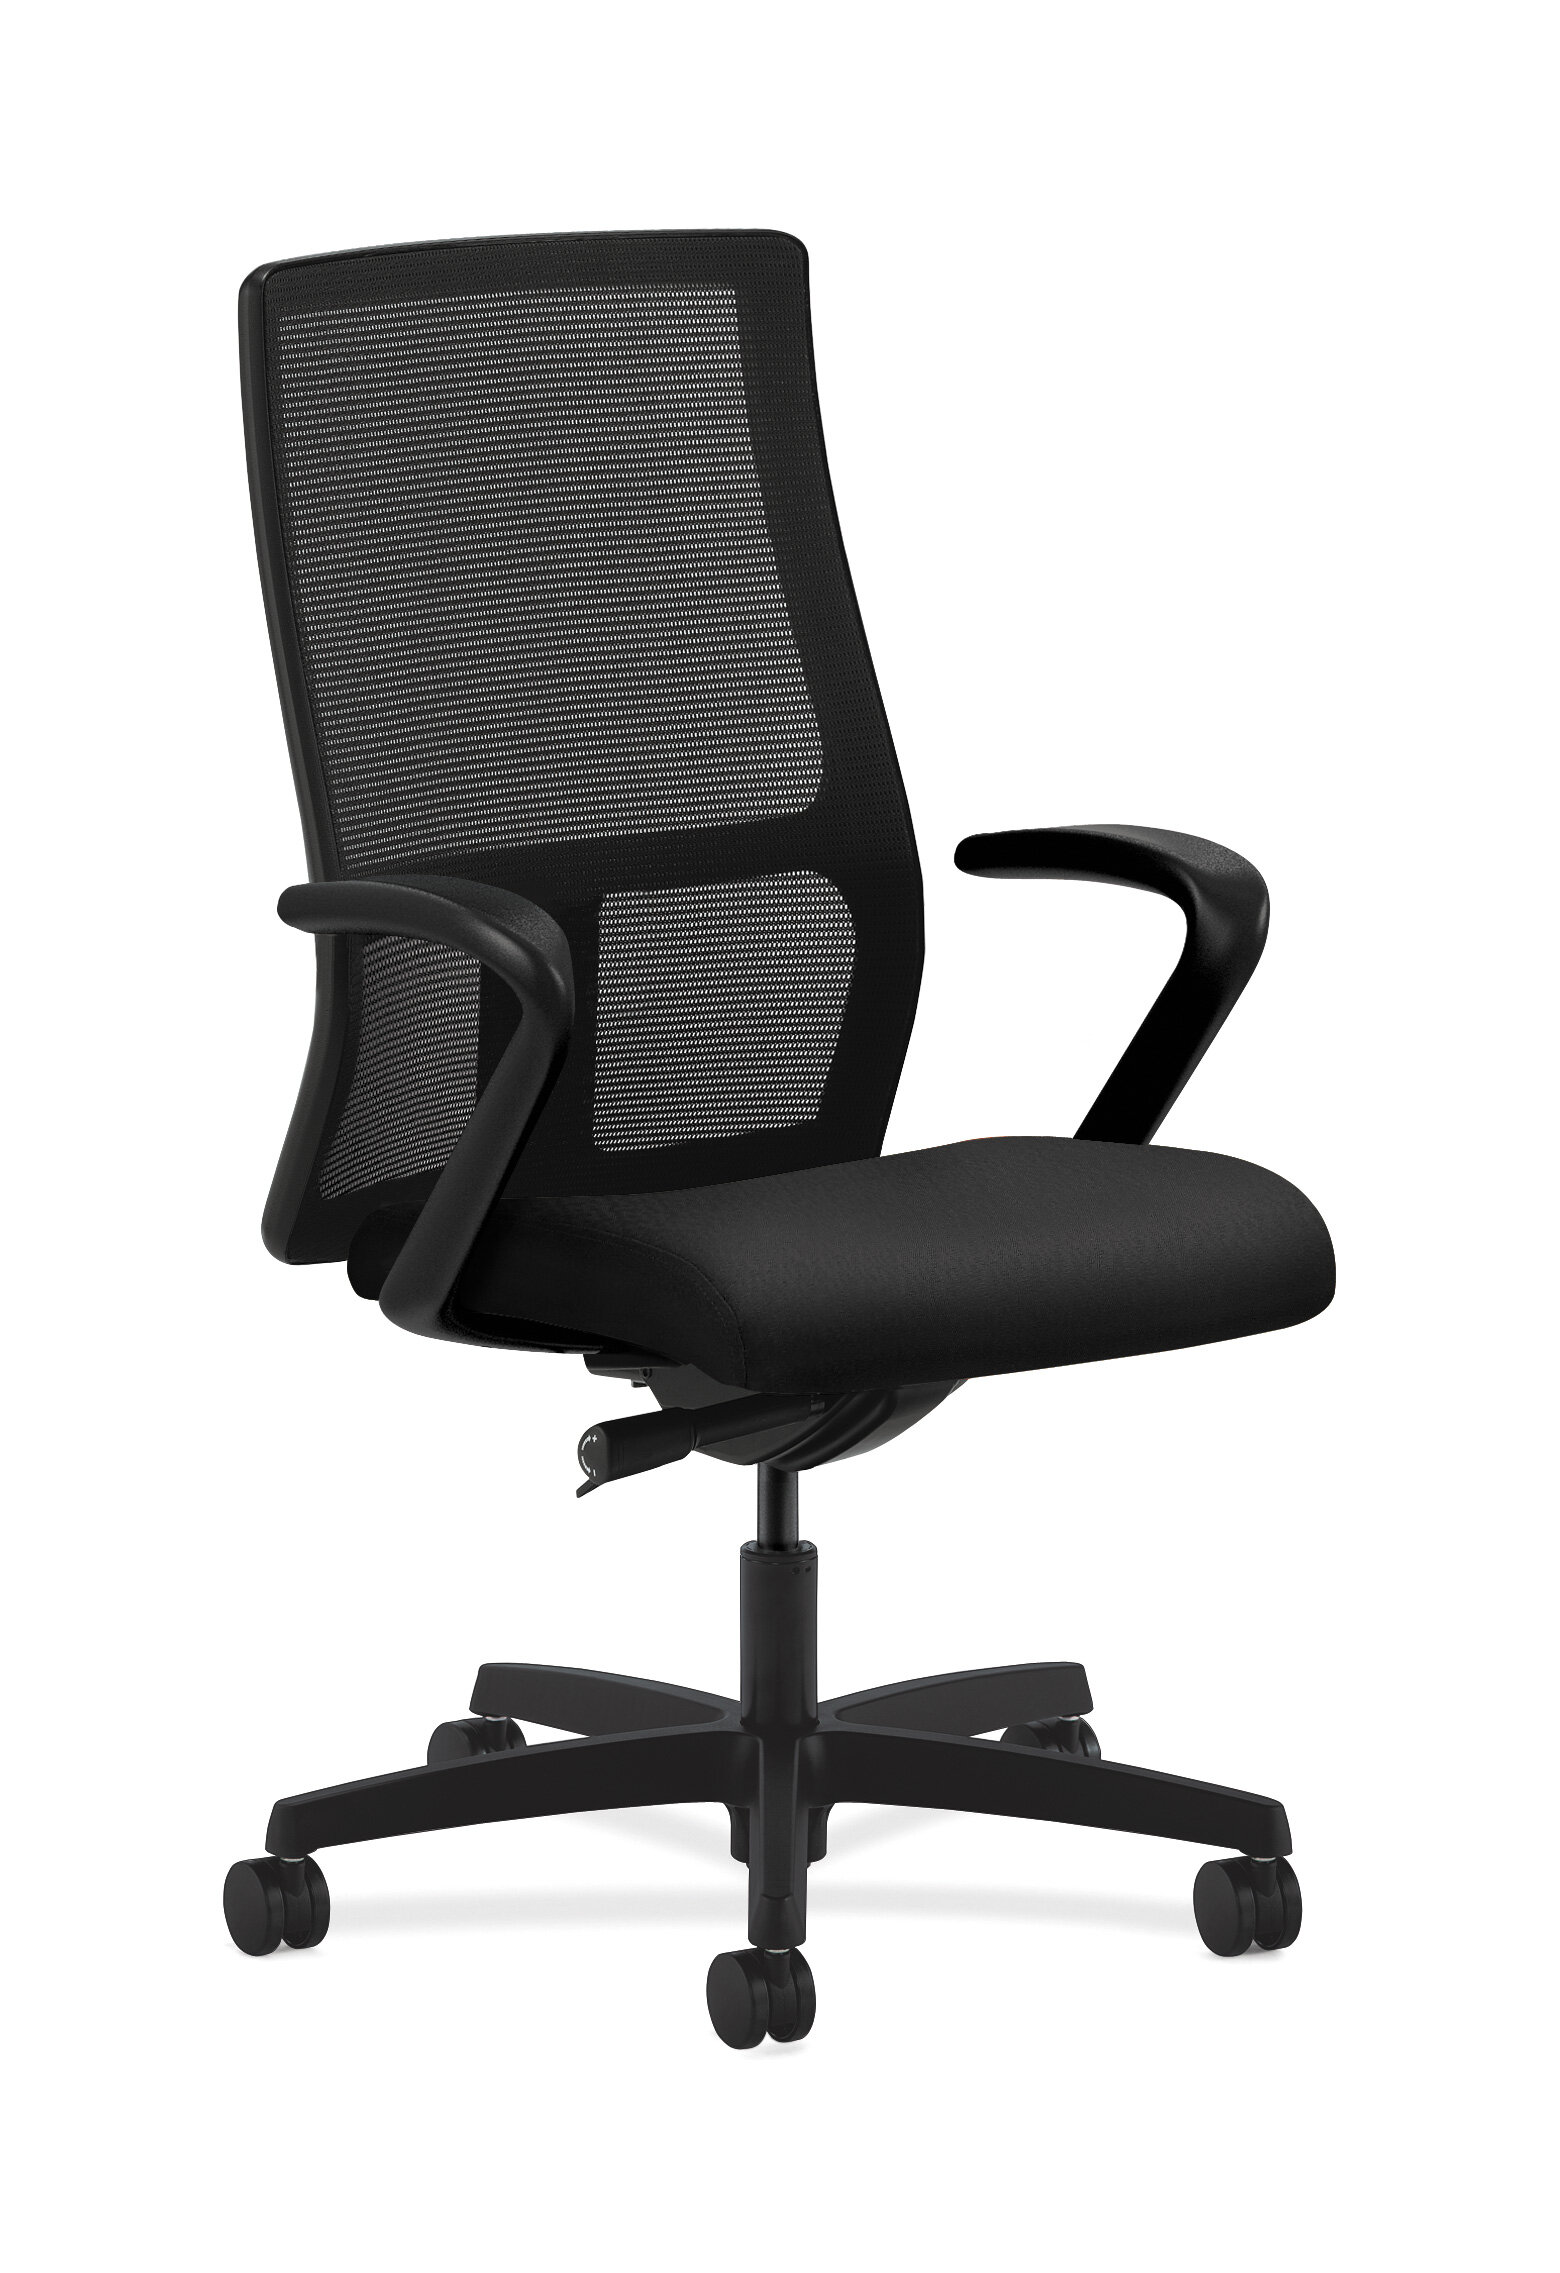 Delicieux HON Ignition Mesh Desk Chair U0026 Reviews | Wayfair